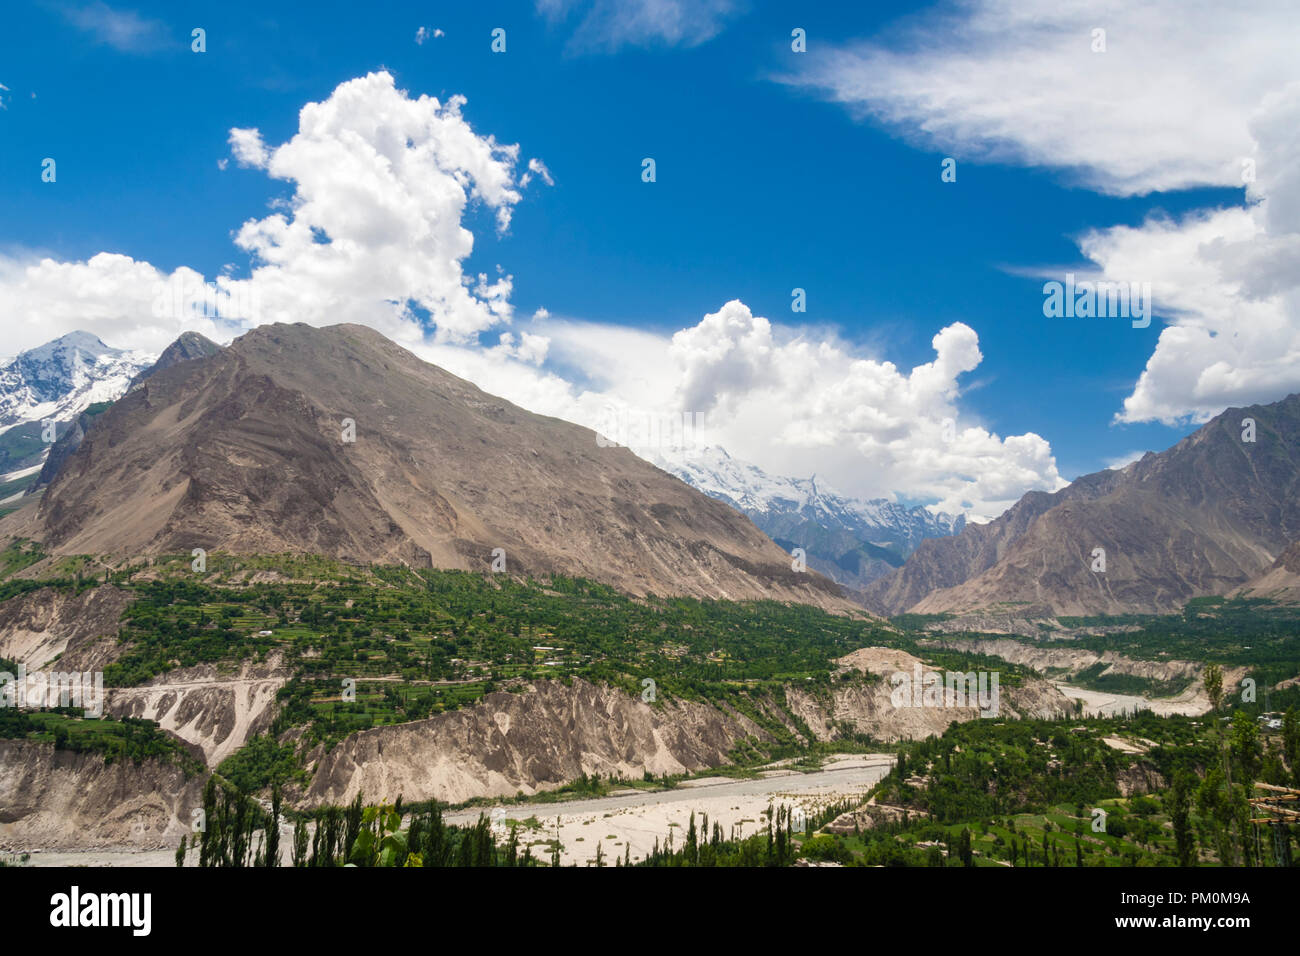 Karimabad, Hunza Valley, Gilgit-Baltistan, Pakistan : Hunza, a mountainous valley in far north Pakistan, bordering with the Wakhan Corridor in Afghani - Stock Image